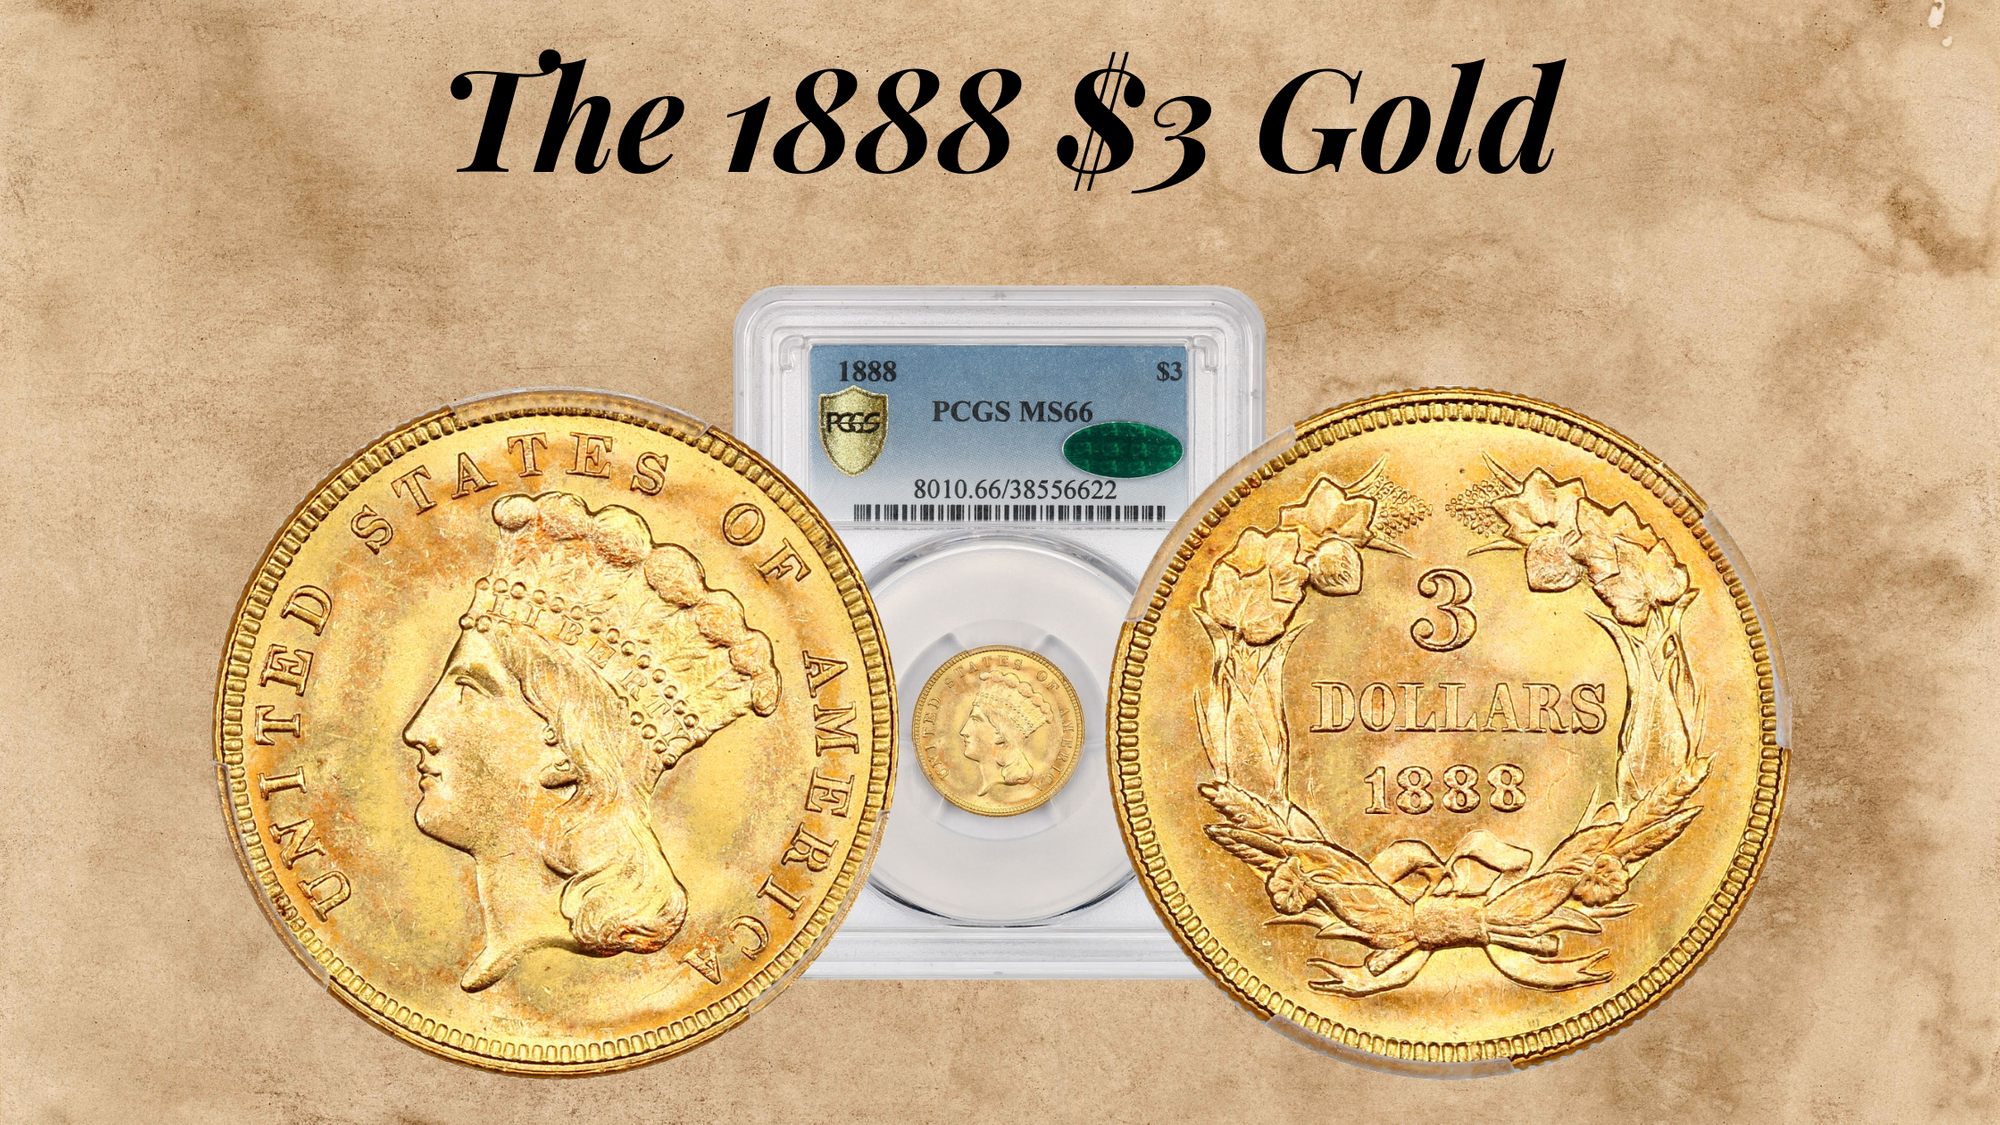 The 1888 $3 Gold